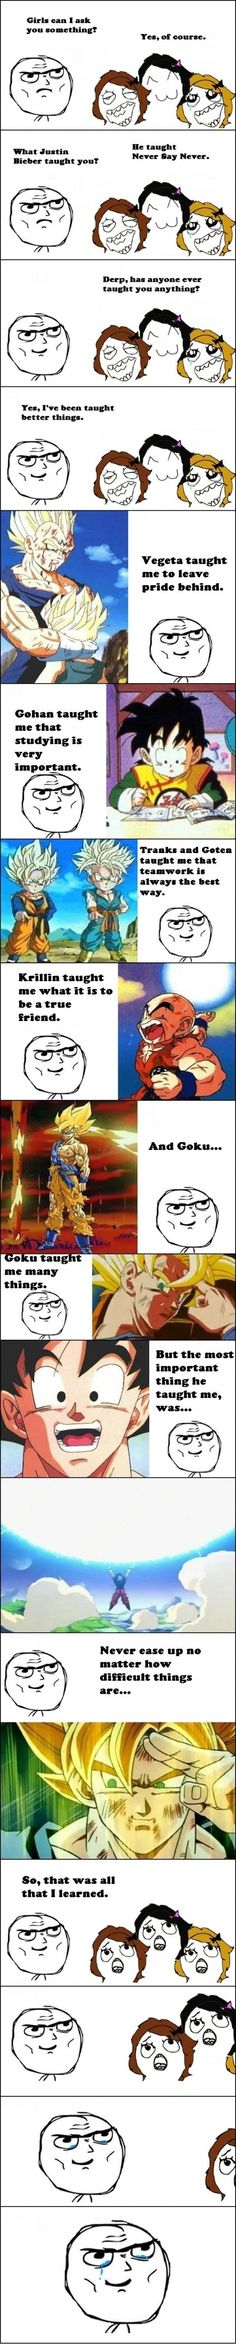 I hate rage comics so much. Also note the implied sexism. Girls like Justin Bieber. Boys like Dragonball Z.